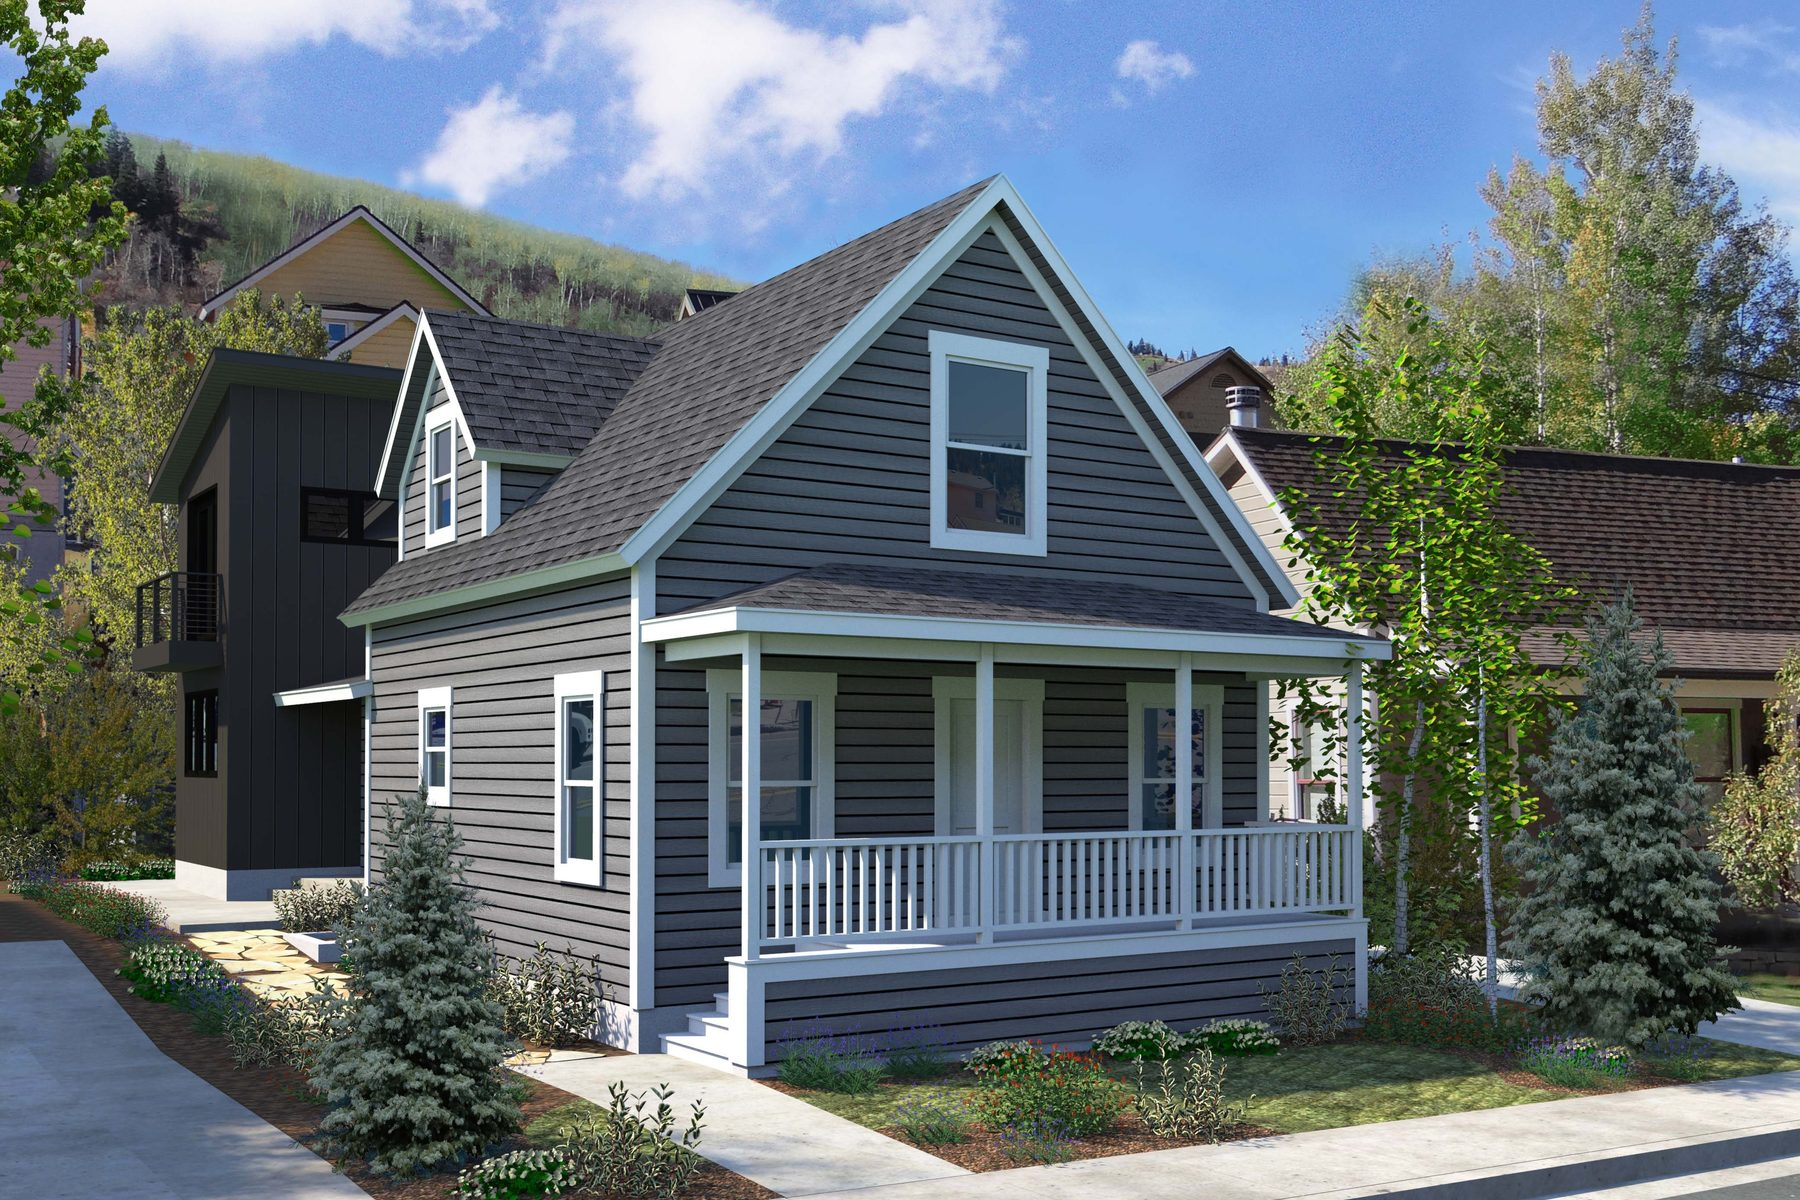 단독 가정 주택 용 매매 에 Custom Home in the Heart of Park City 923 Park Ave Park City, 유타, 84060 미국